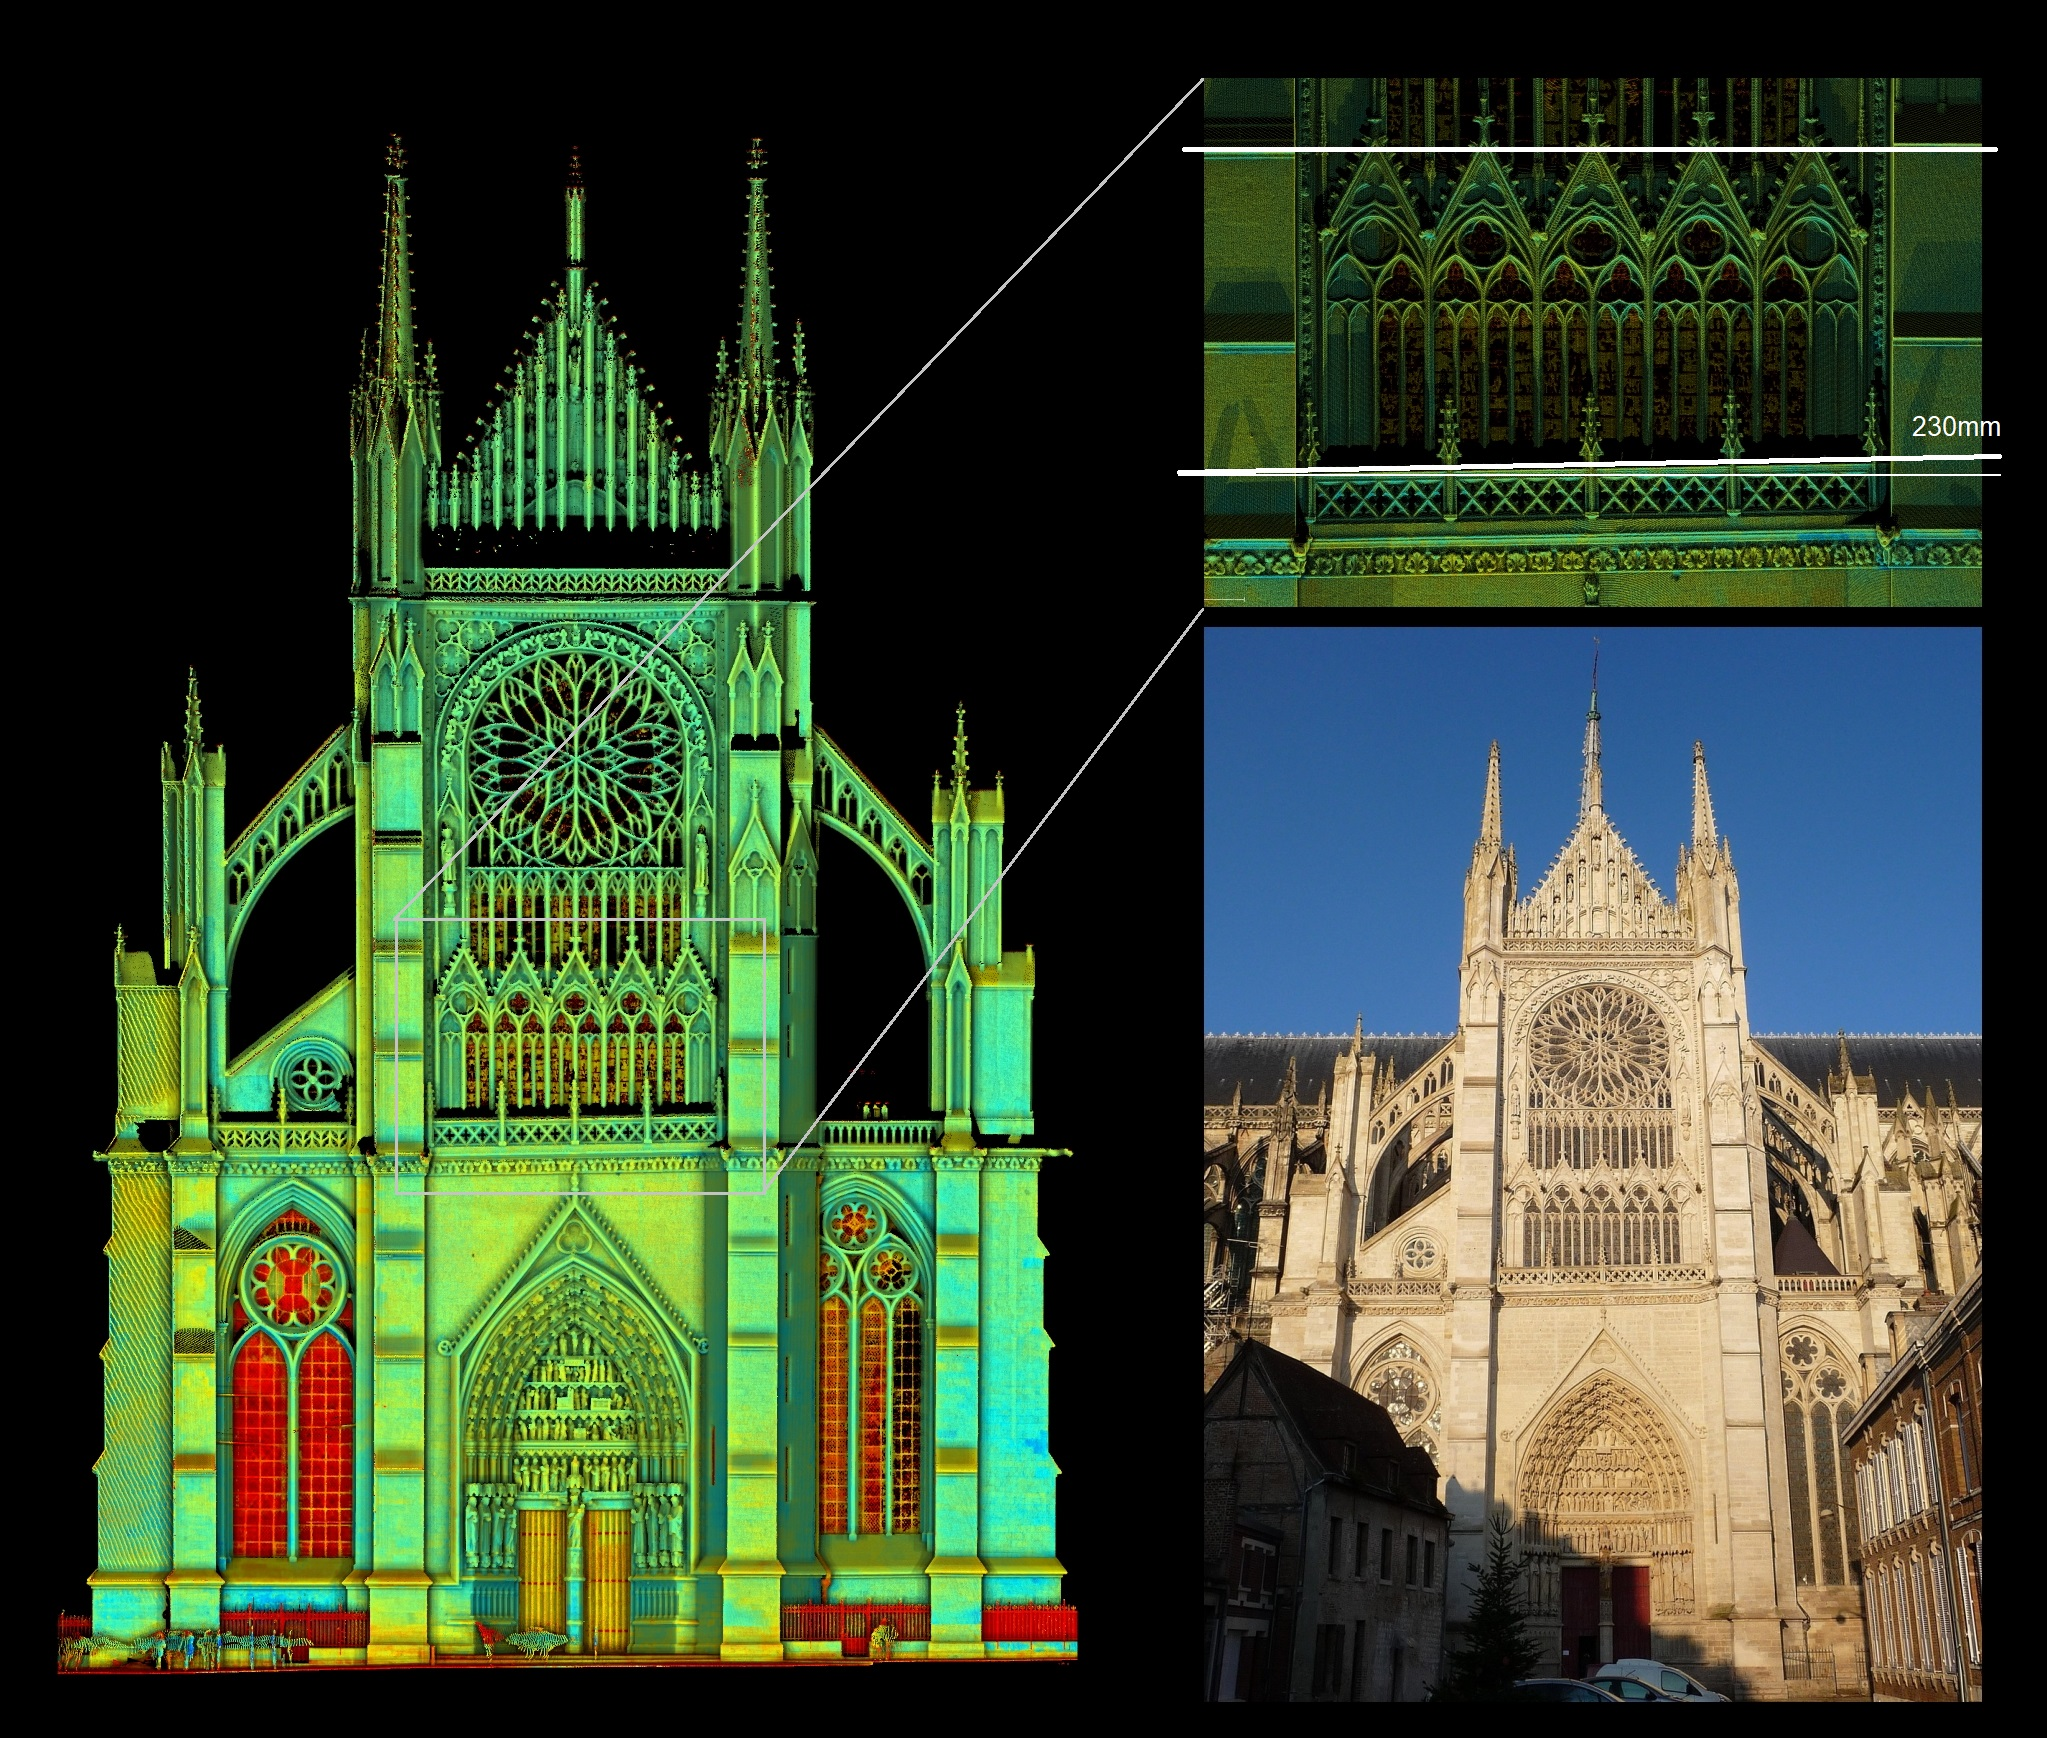 Notre Dame Cathedral Amiens France Trimble 3D Laser Scan